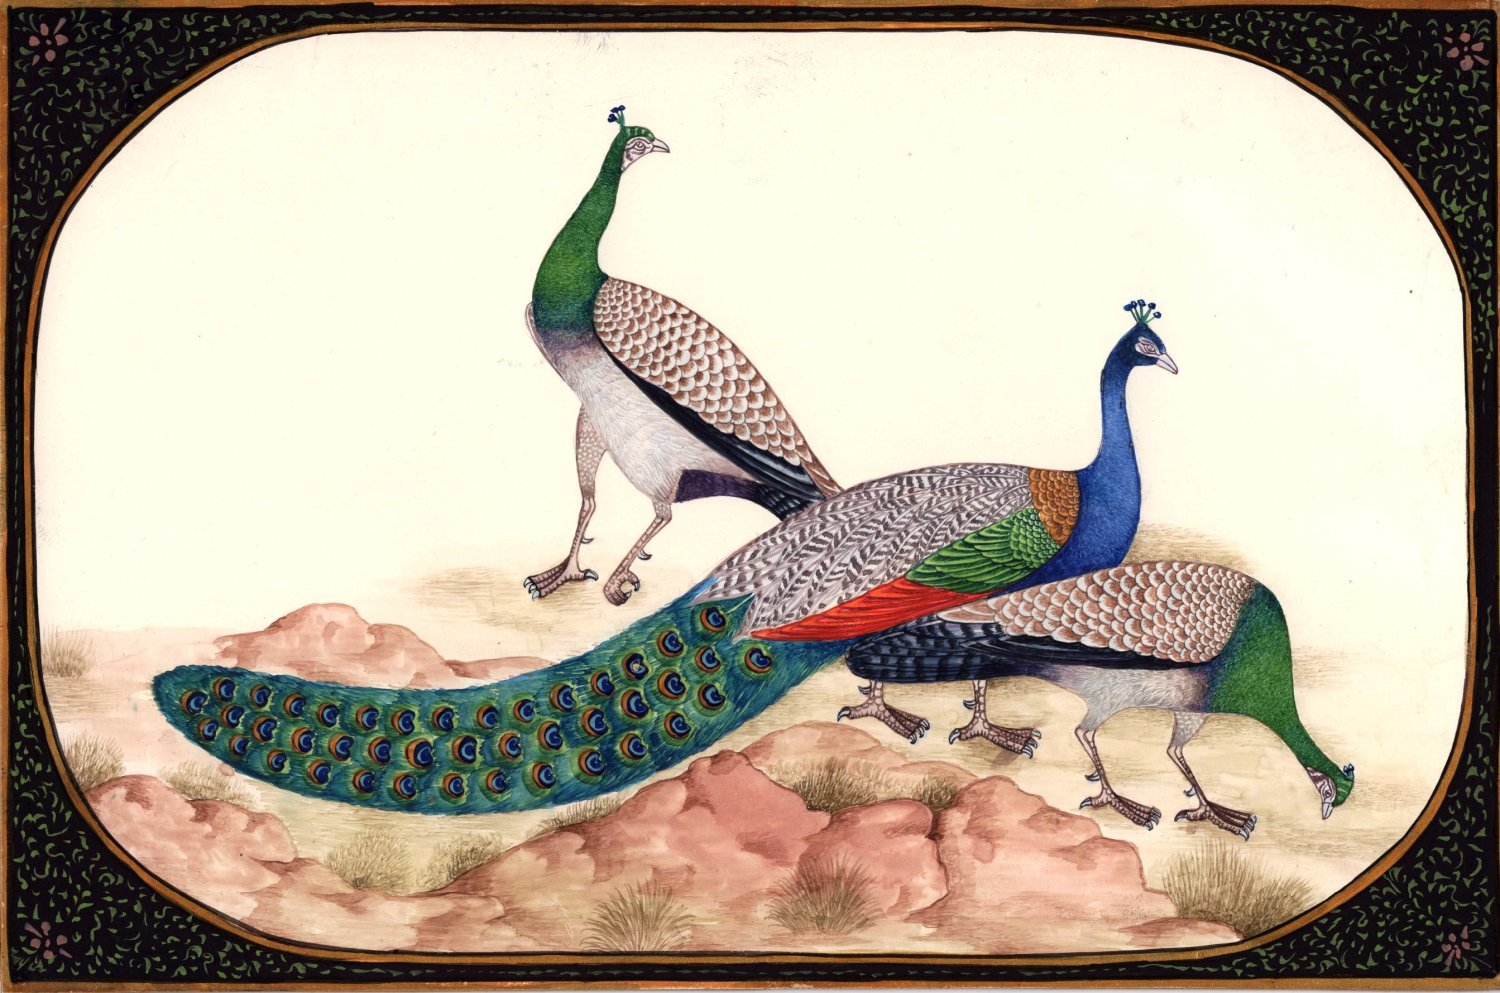 Peafowl Peacock Indian Art Handmade Miniature Nature Bird of Paradise Painting